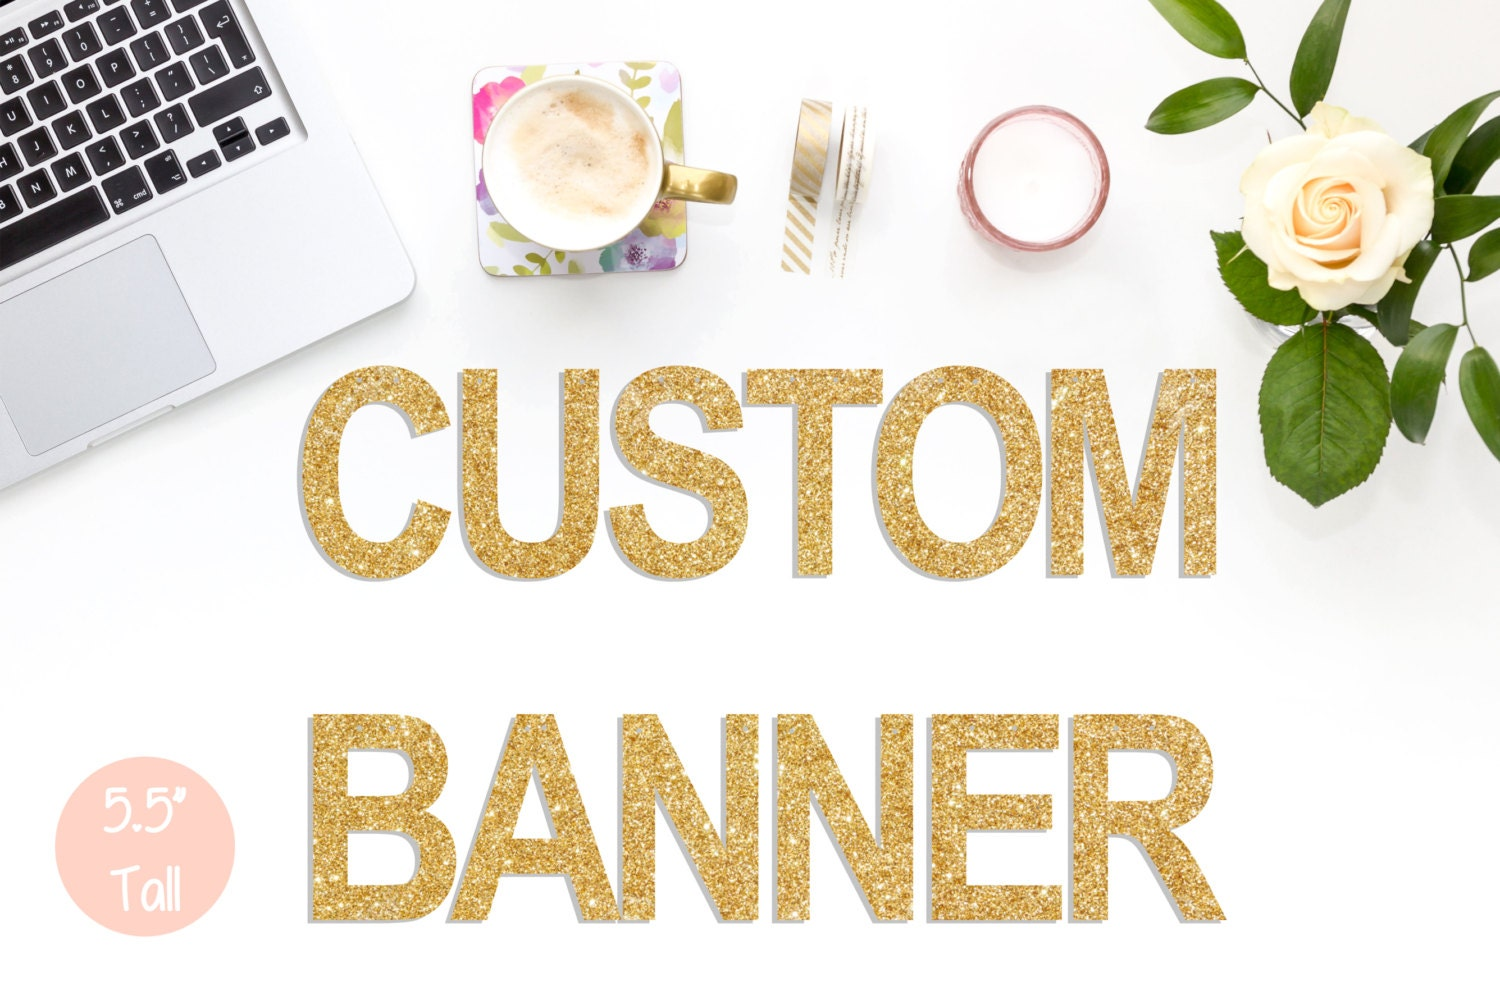 custom banner large personalised banner 5 5 tall party banner name